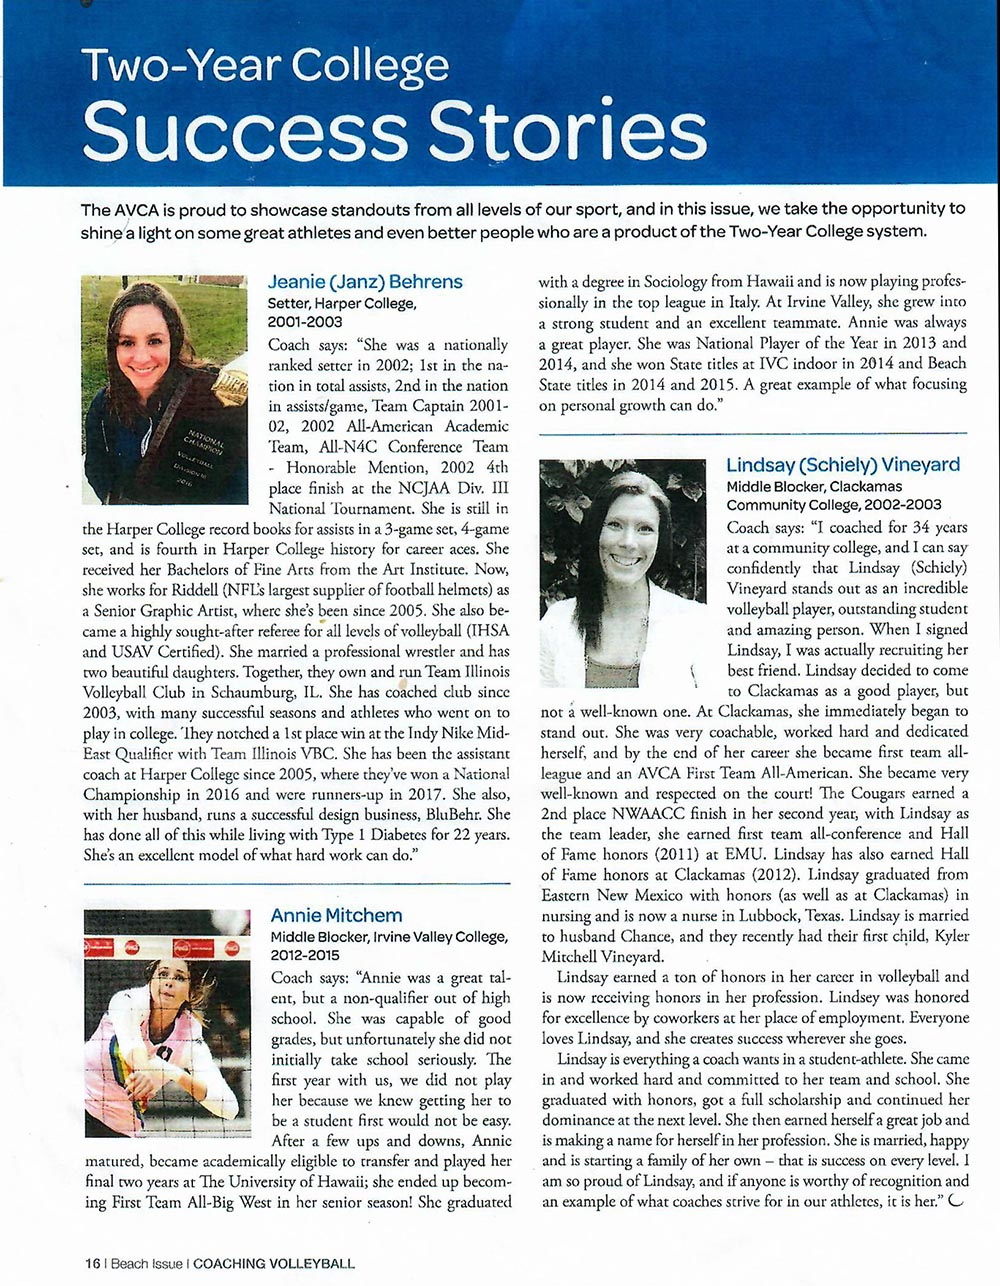 AVCA article page scan